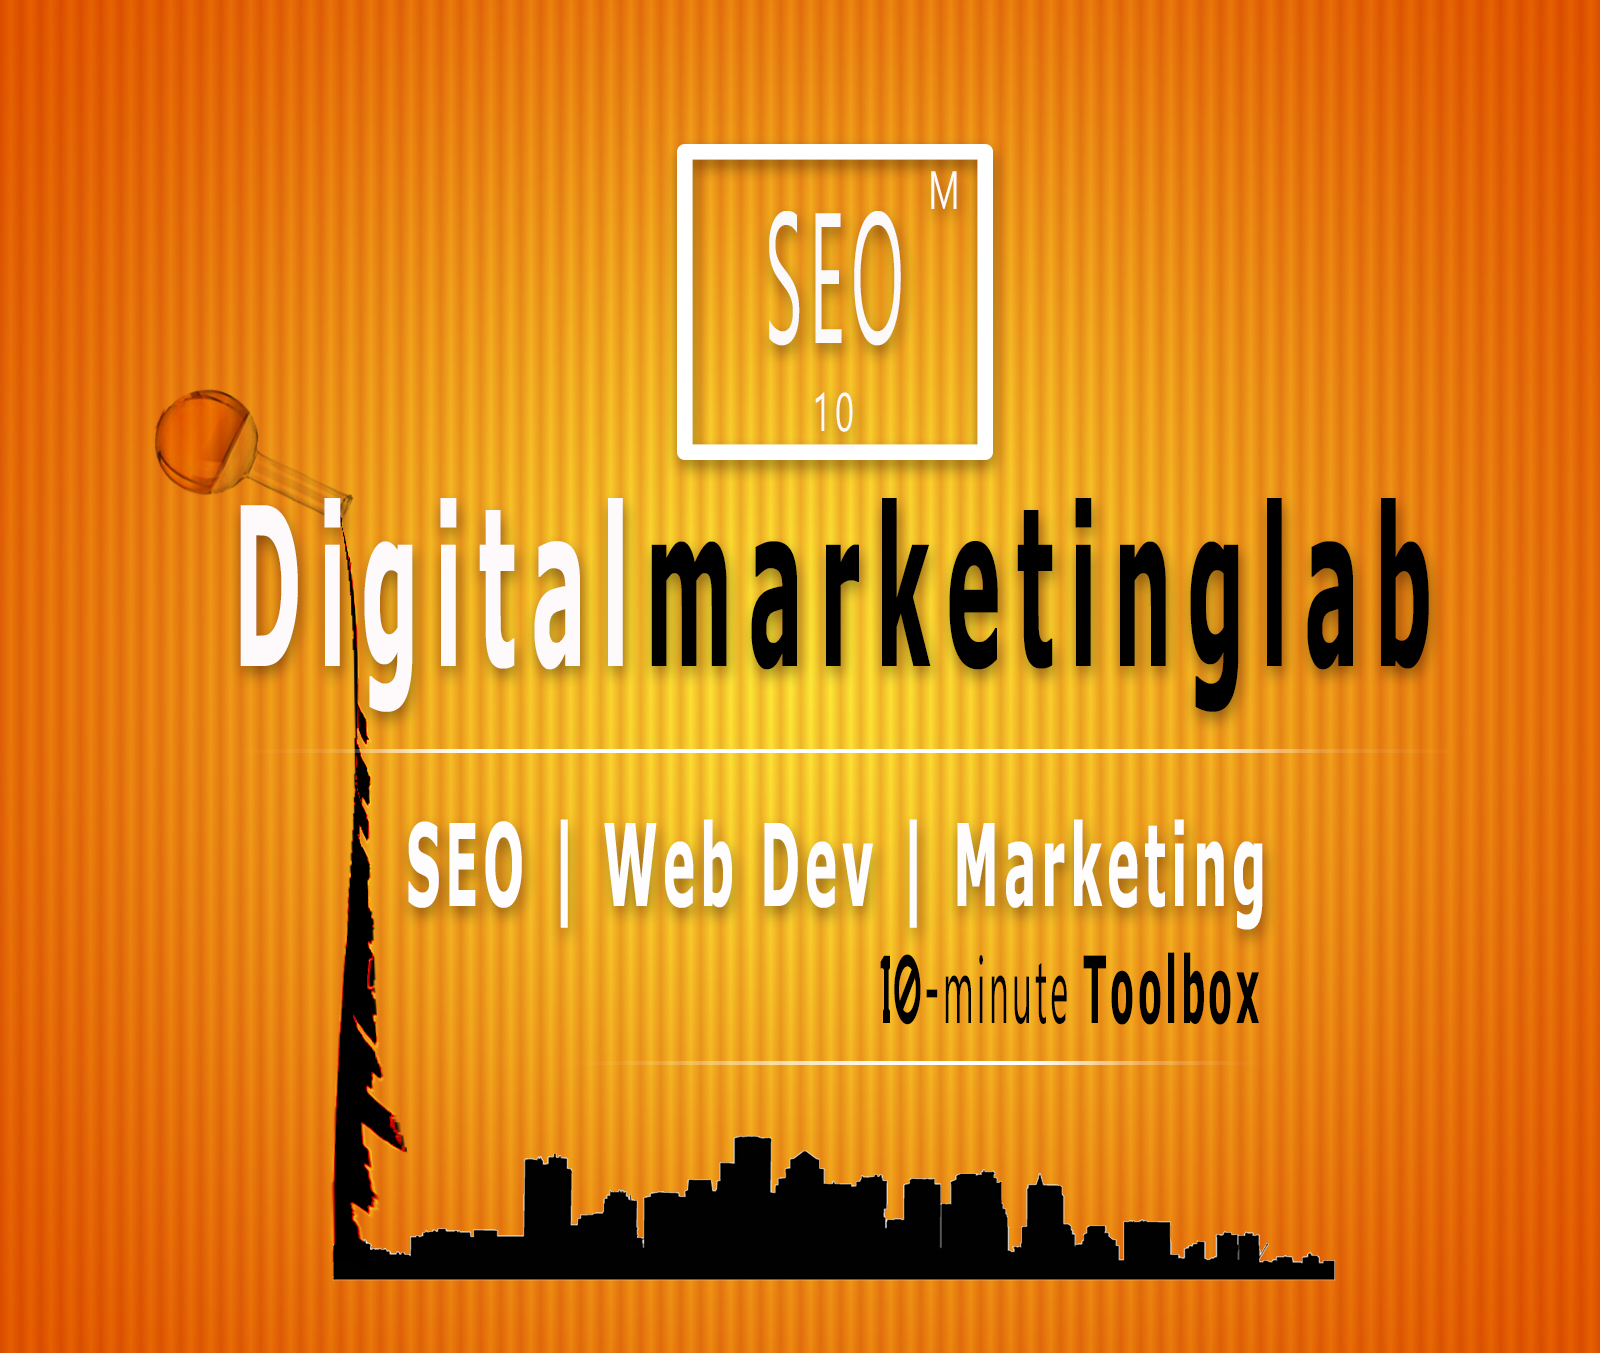 Digital Marketing Lab | SEO Part 1 | Nozak Consulting